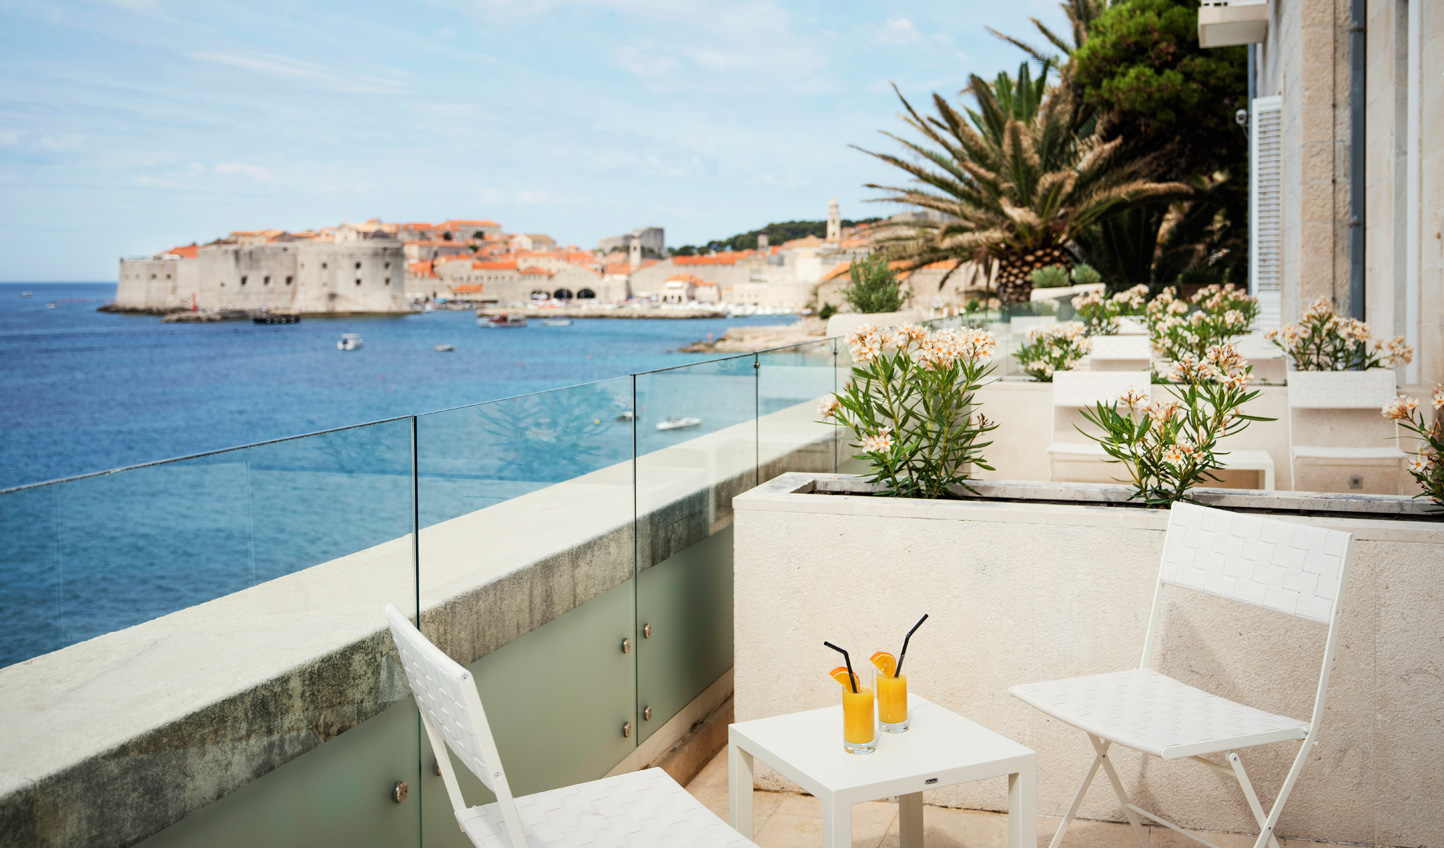 Start the day right with breakfast on your private balcony